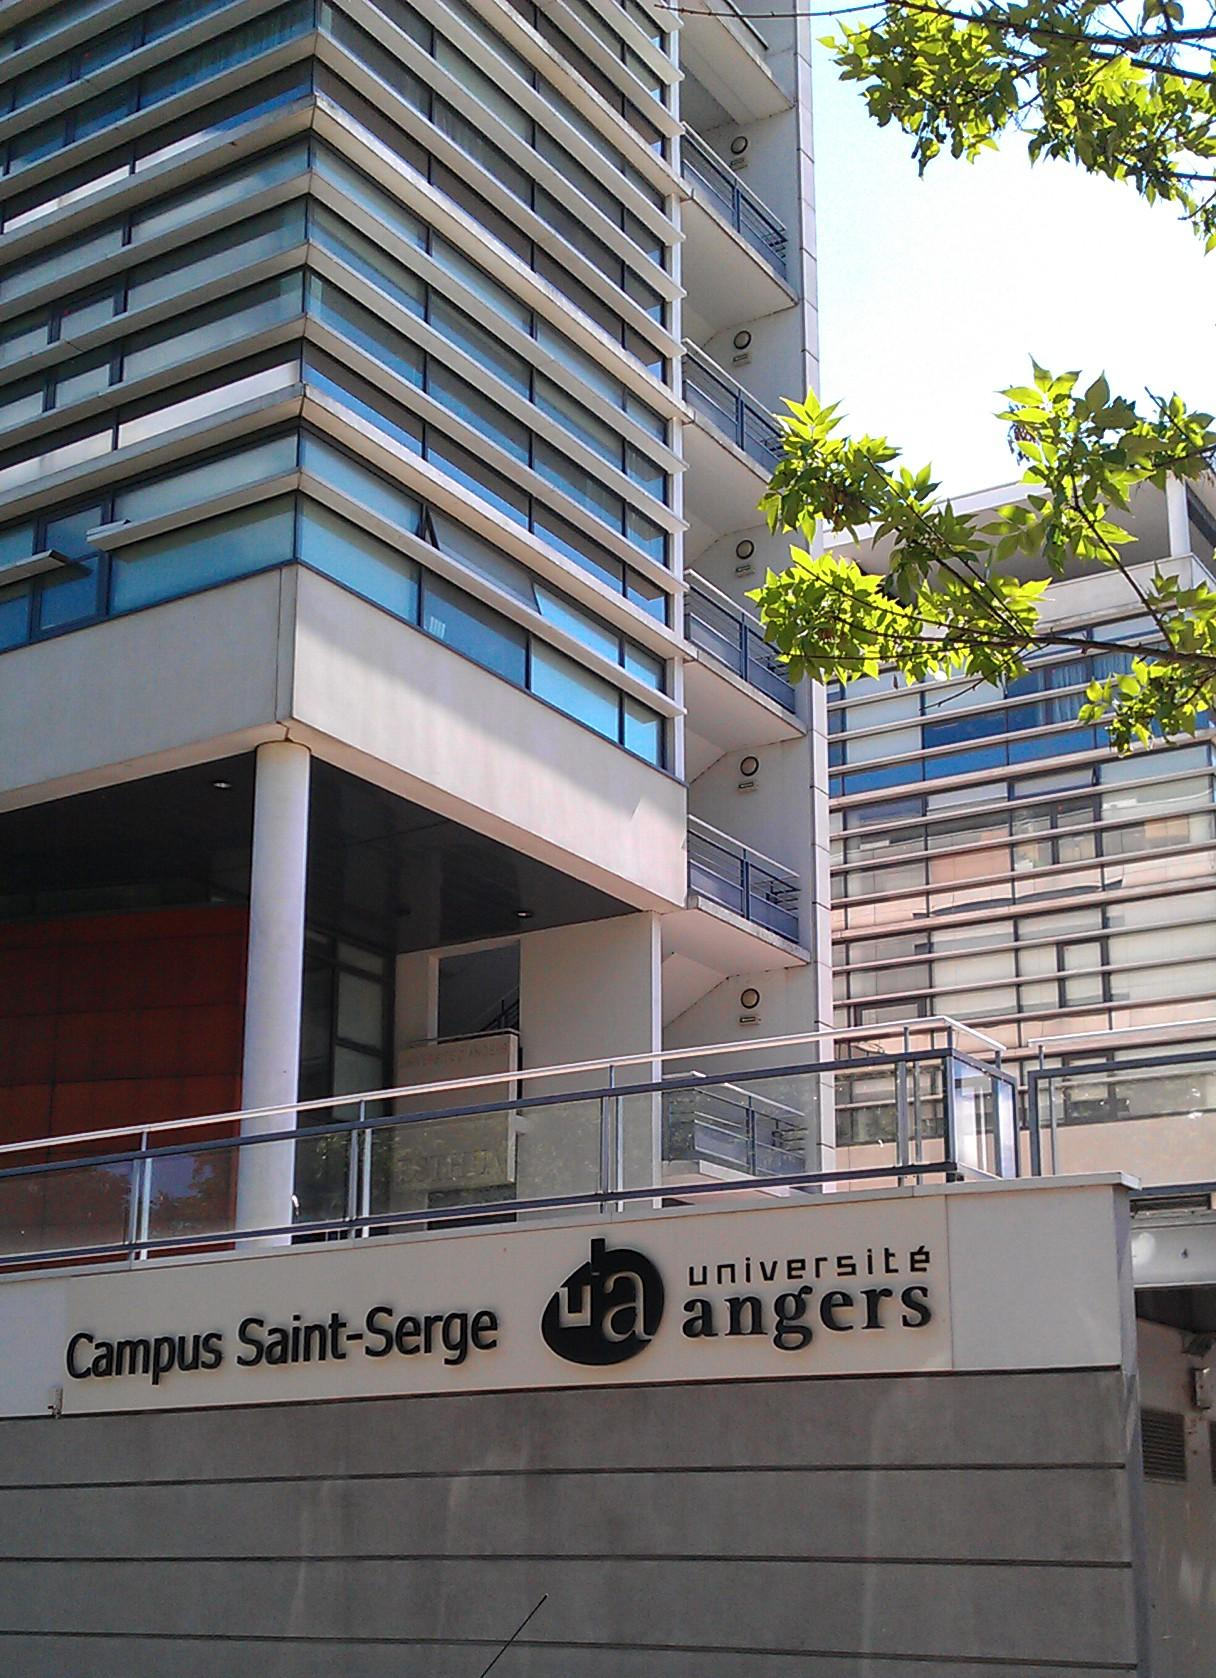 Campus Saint-Serge